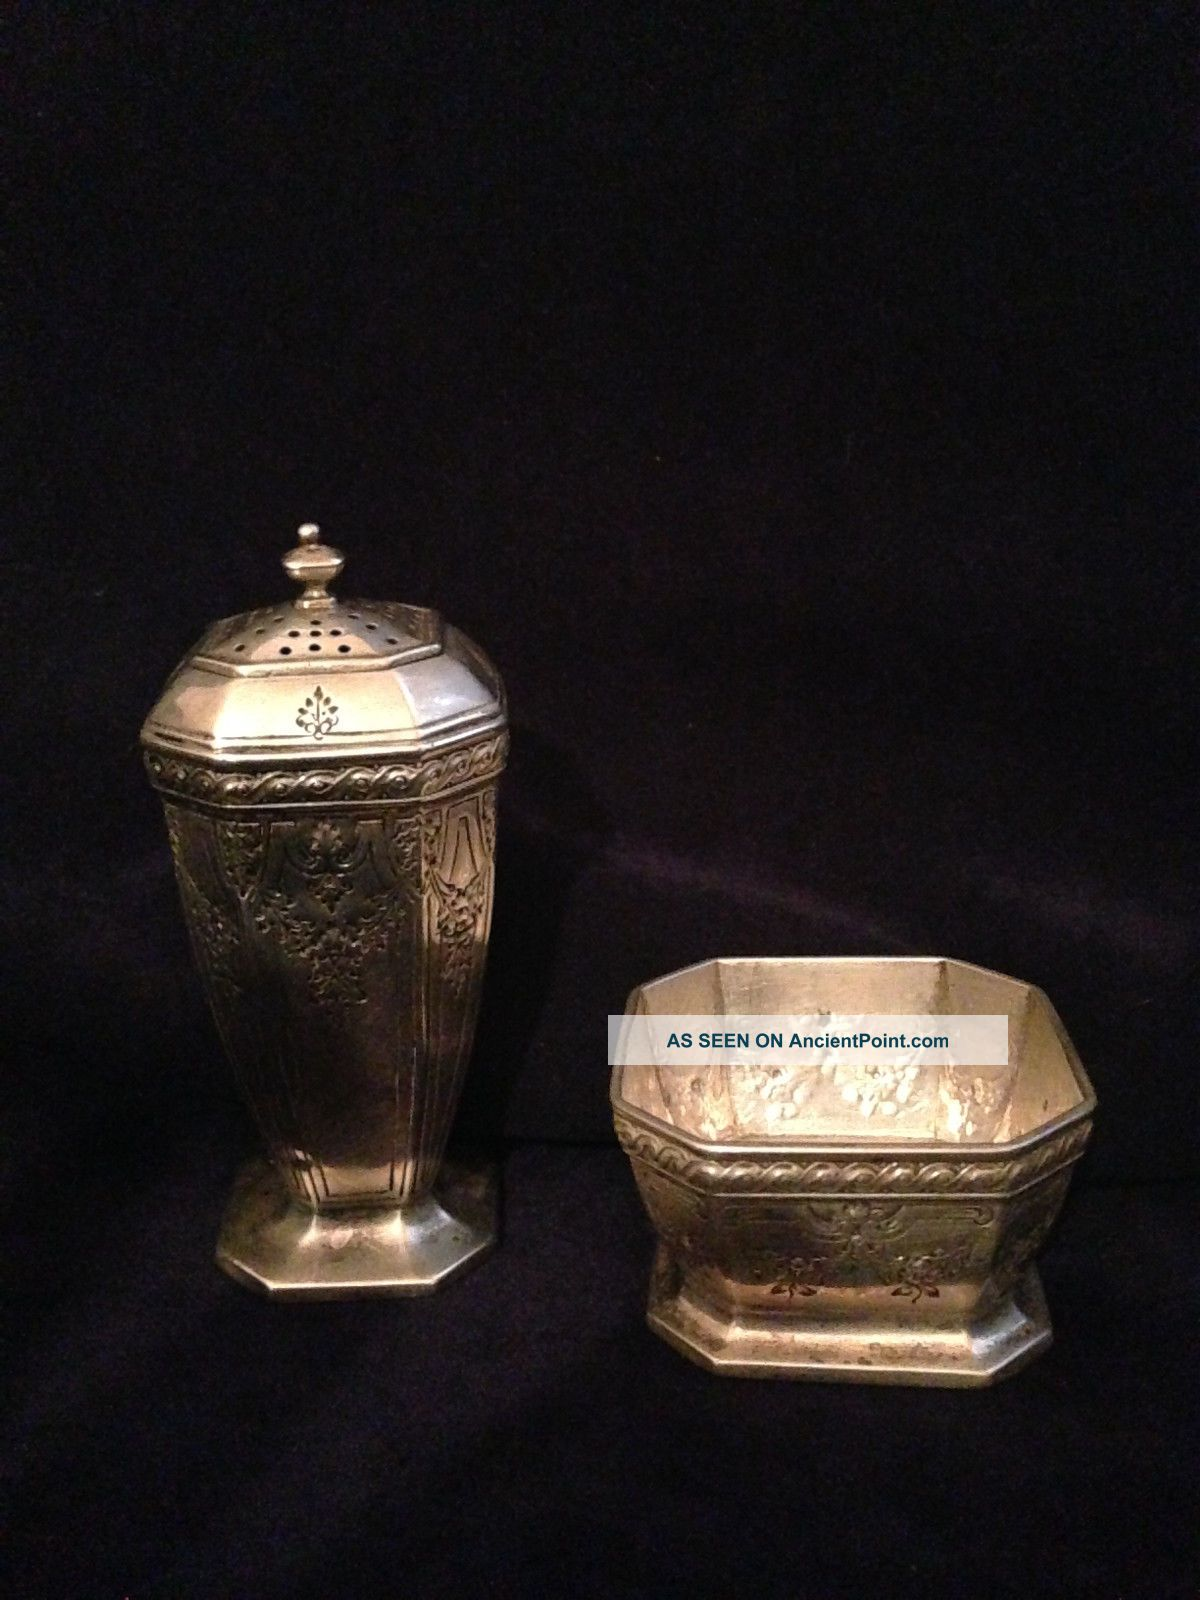 Durgin Fairfax 4 - B Engraved Salt Dish And Pepper Shaker Bowls photo